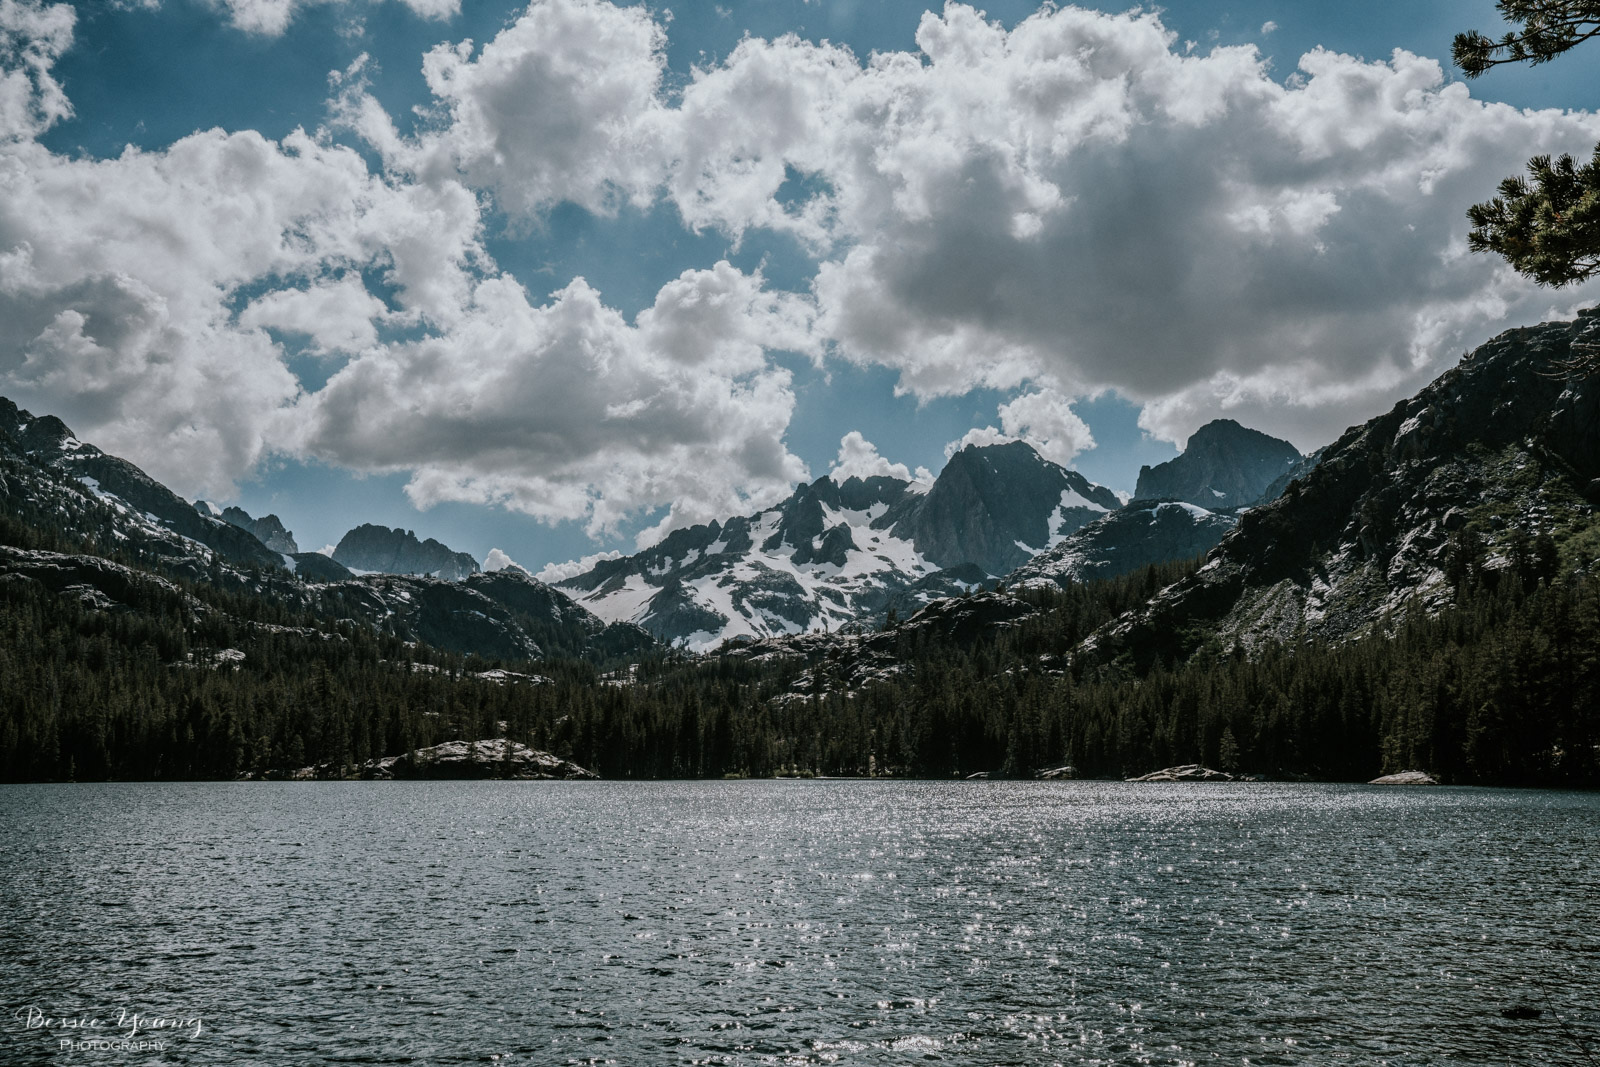 Ansel Adams Wilderness Backpacking day 1 2017 - Bessie Young Photography-11.jpg